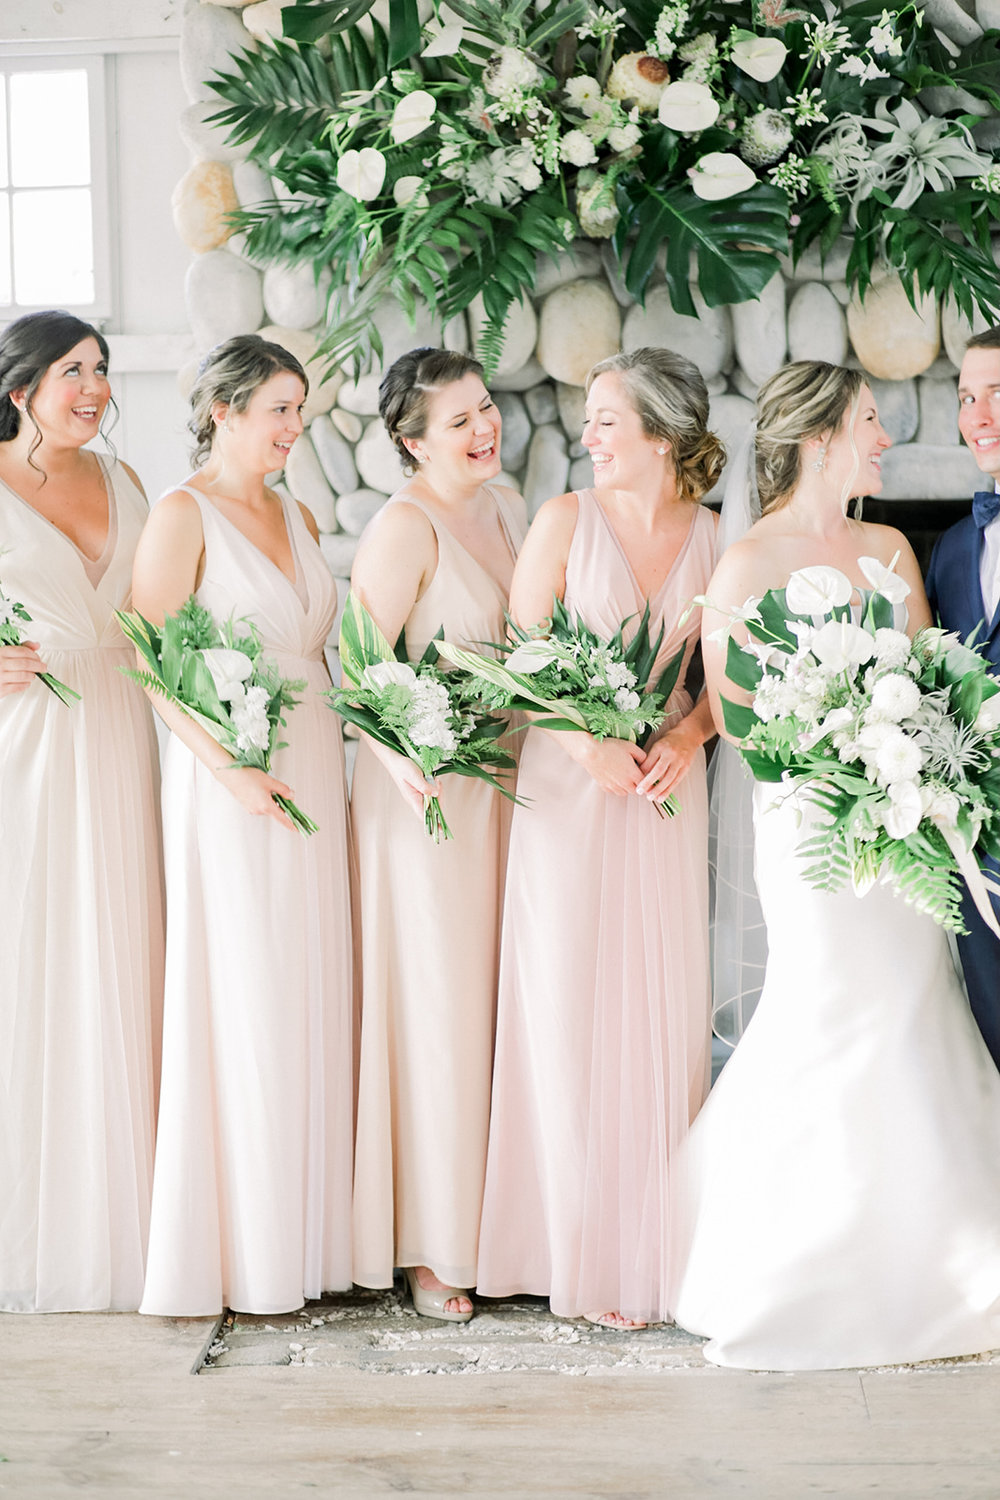 Lara_Arthur_8.18.2018_Wedding-304.jpg